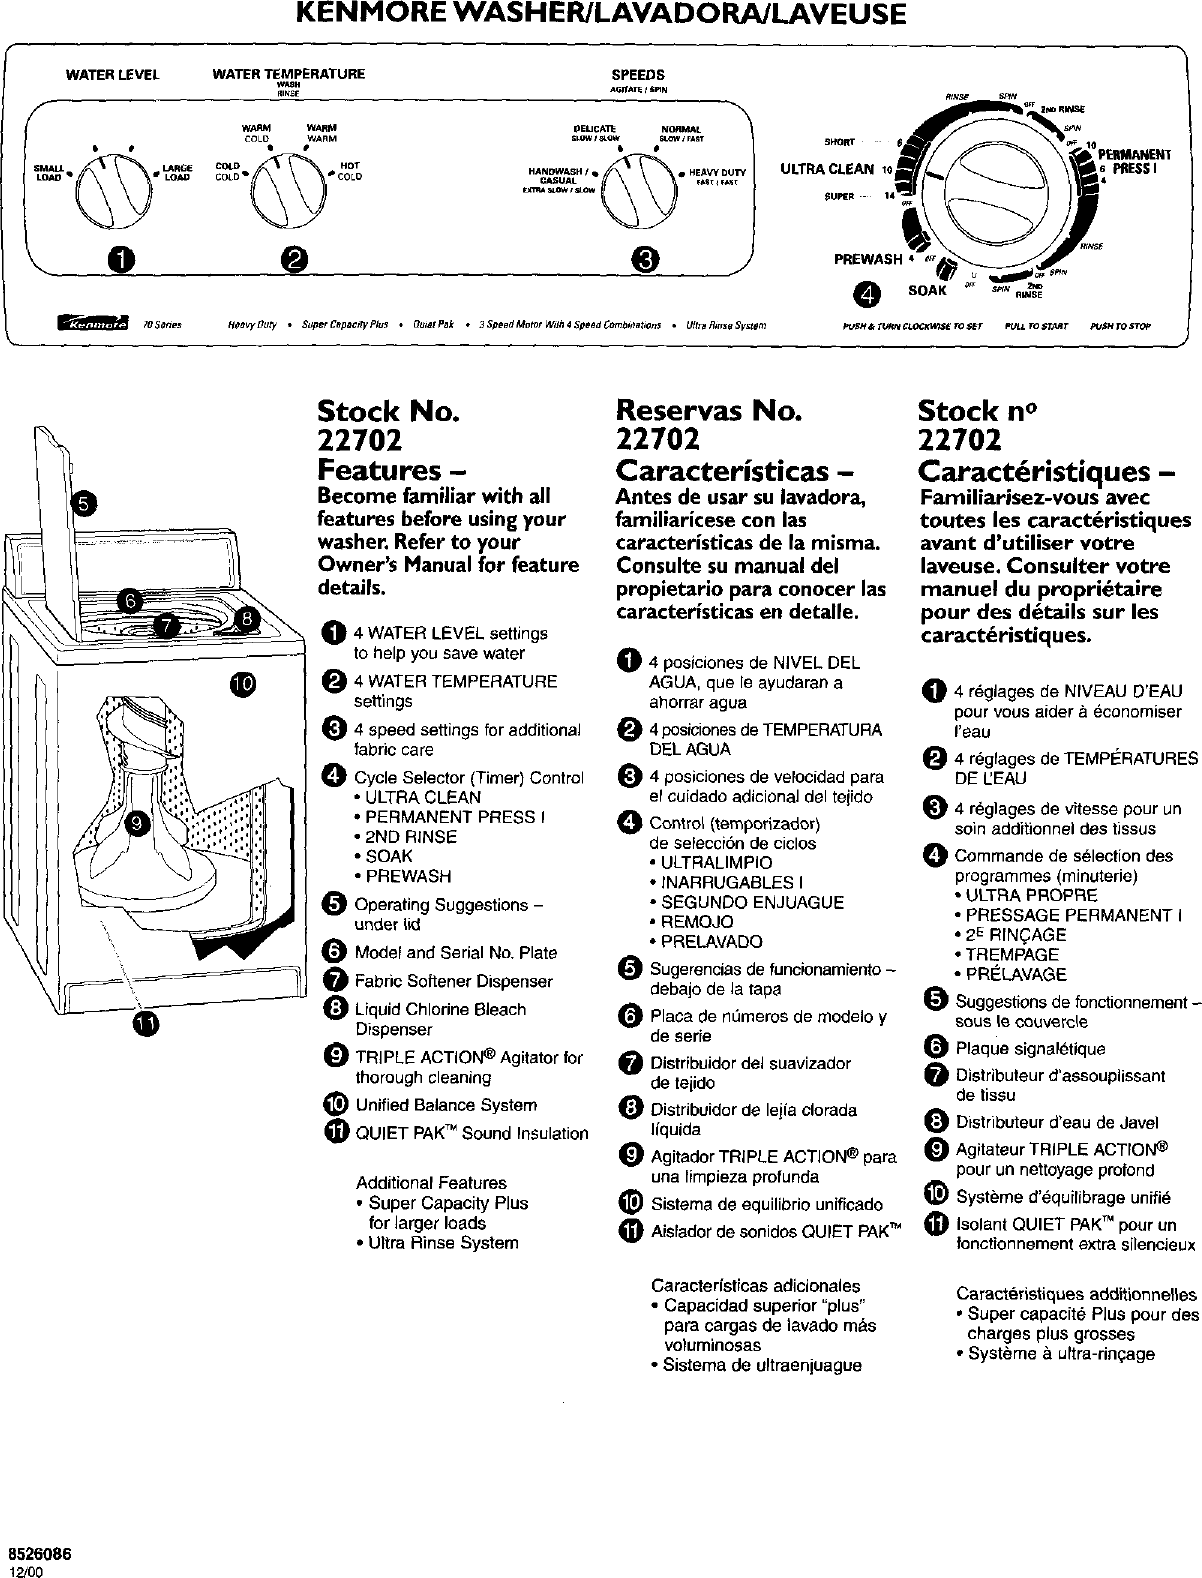 Kenmore 11022702100 User Manual AUTOMATIC WASHER, COMPACT